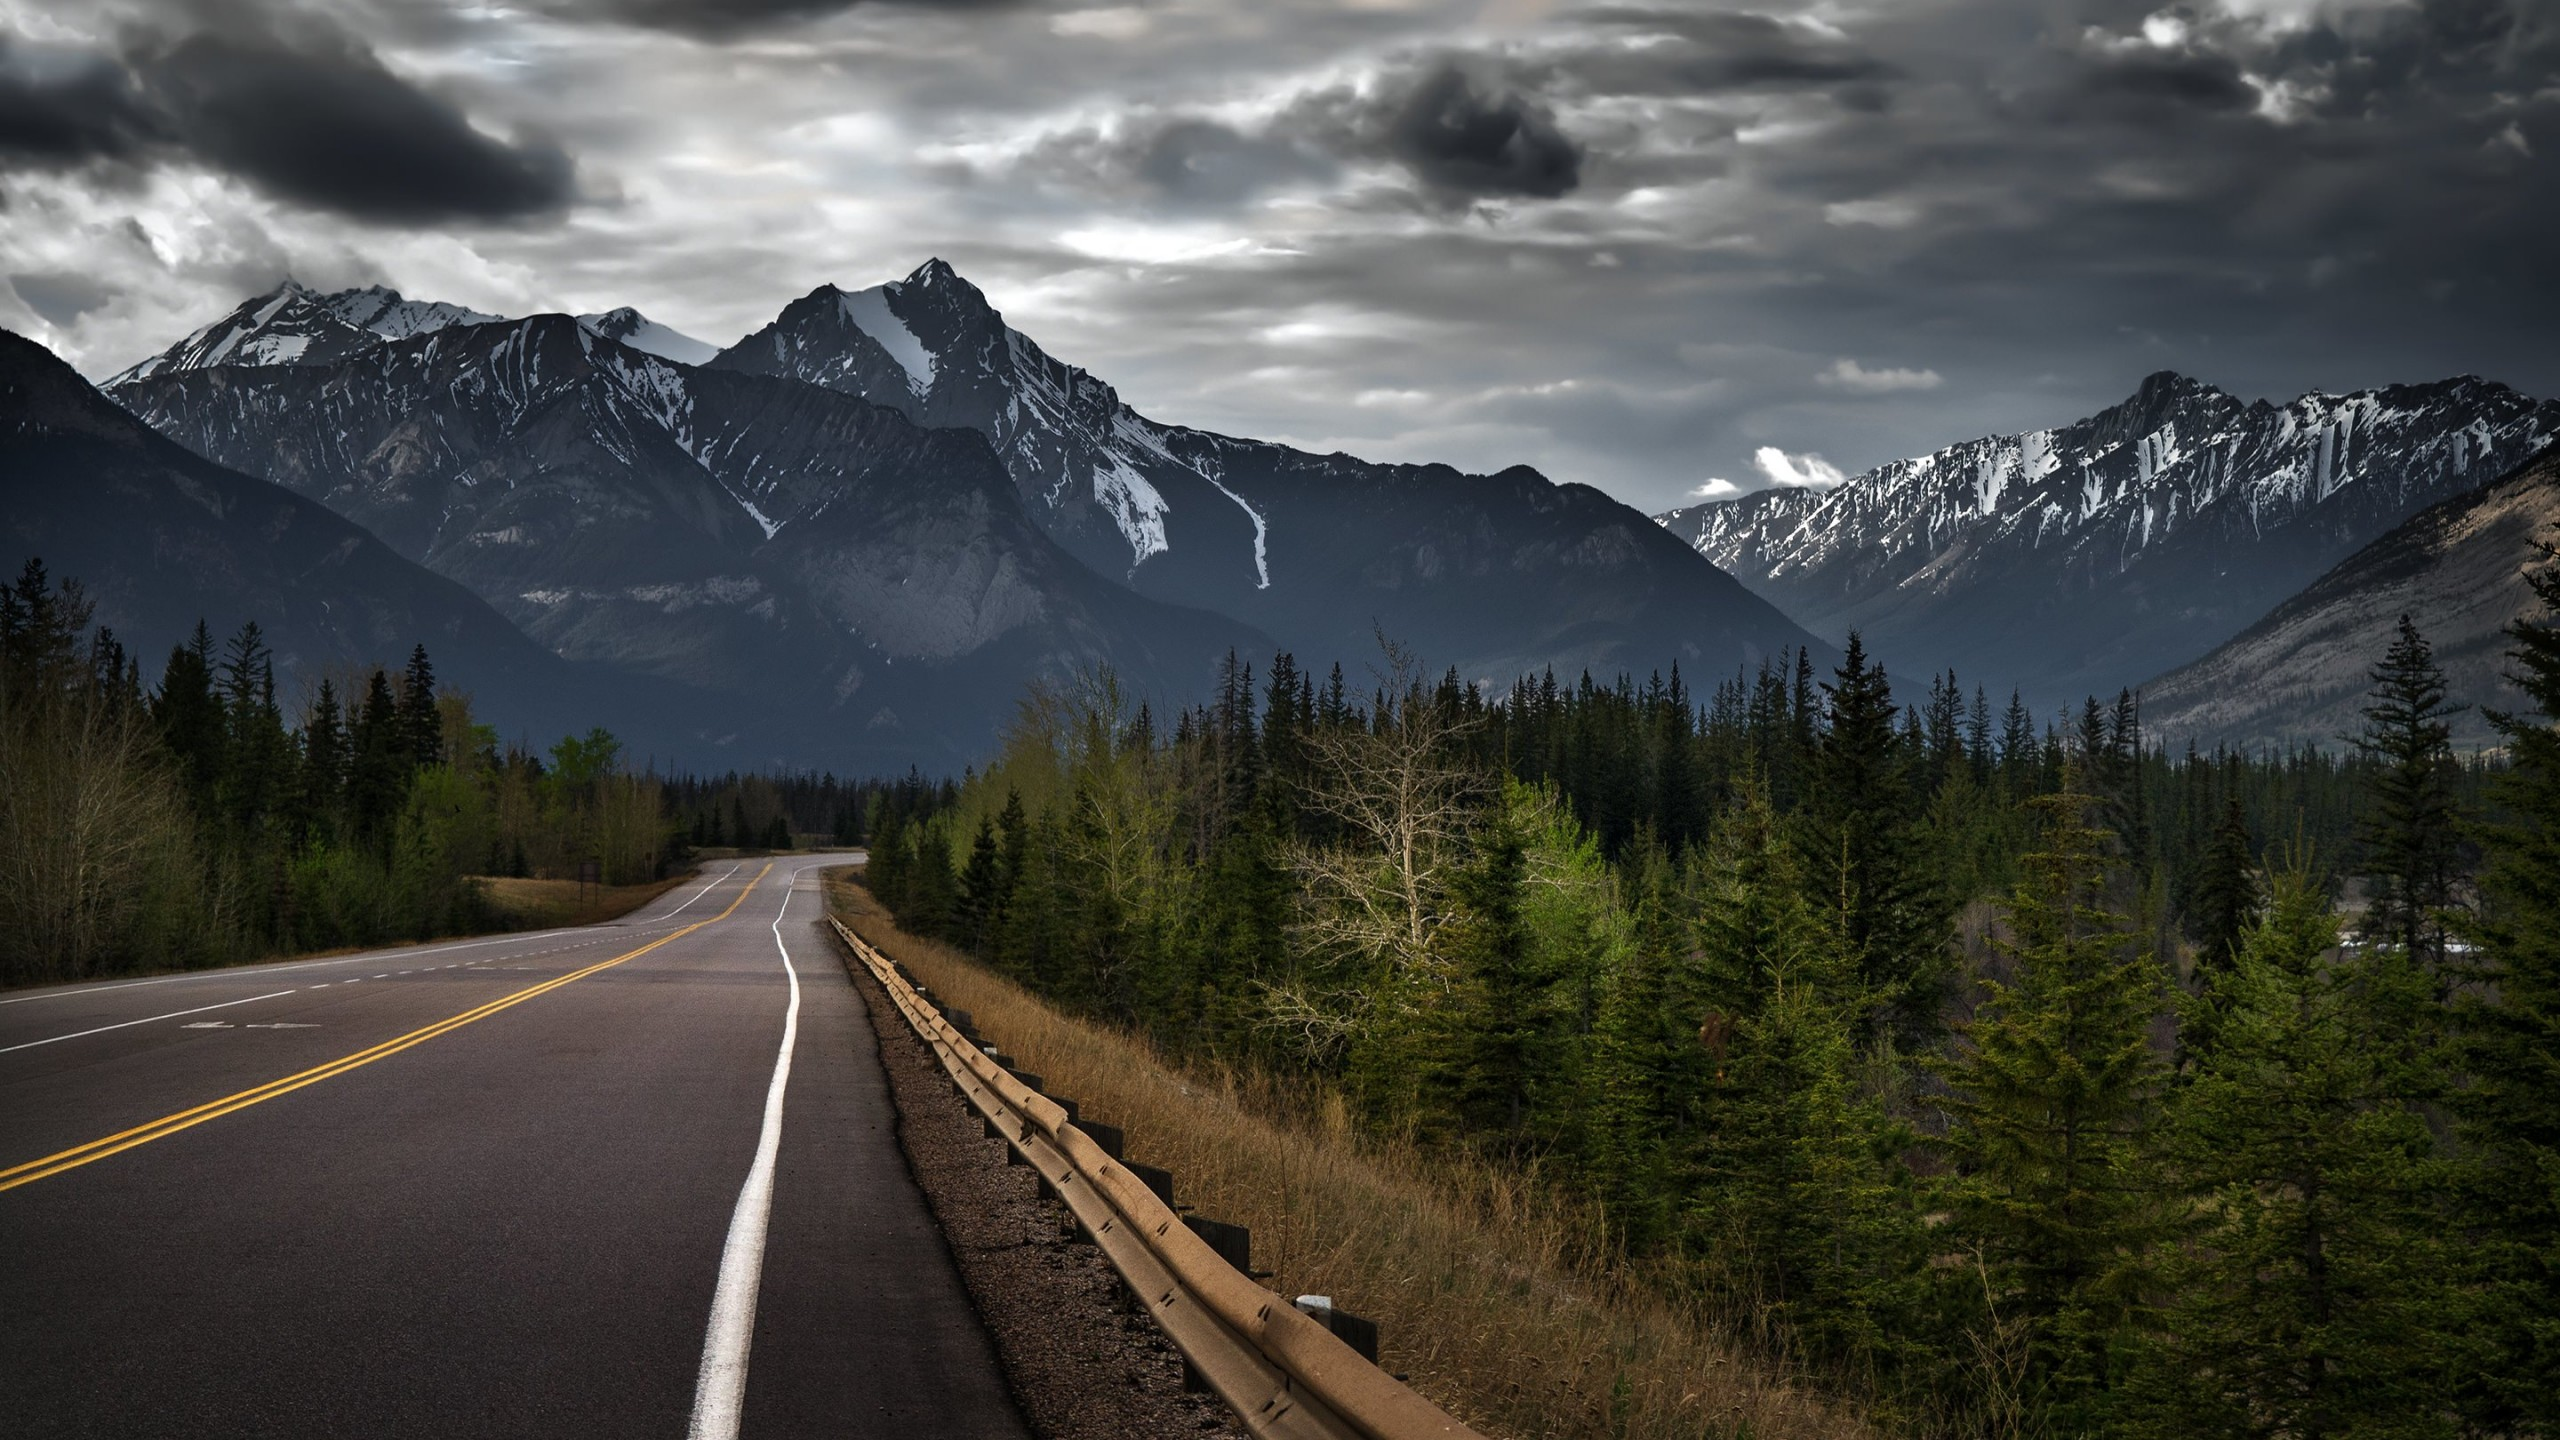 Road trip on a stormy day, Canada Wallpaper for Social Media YouTube Channel Art